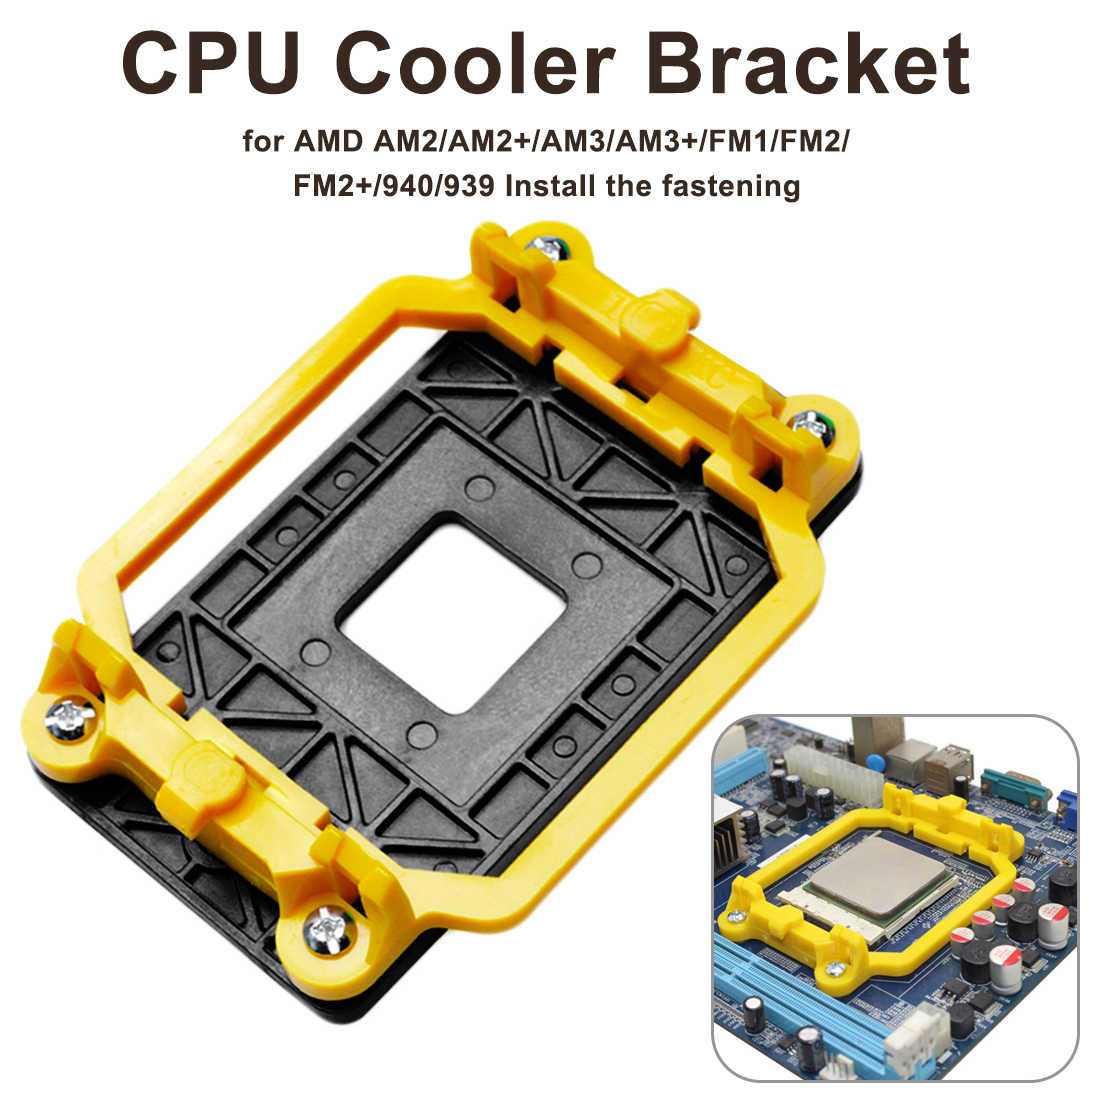 1 Pcs CPU Cooler Cooling Retensi Bracket Mount untuk AMD Soket AM3 AM3 AM2 AM2 940 CPU Kipas Radiator Folder dasar